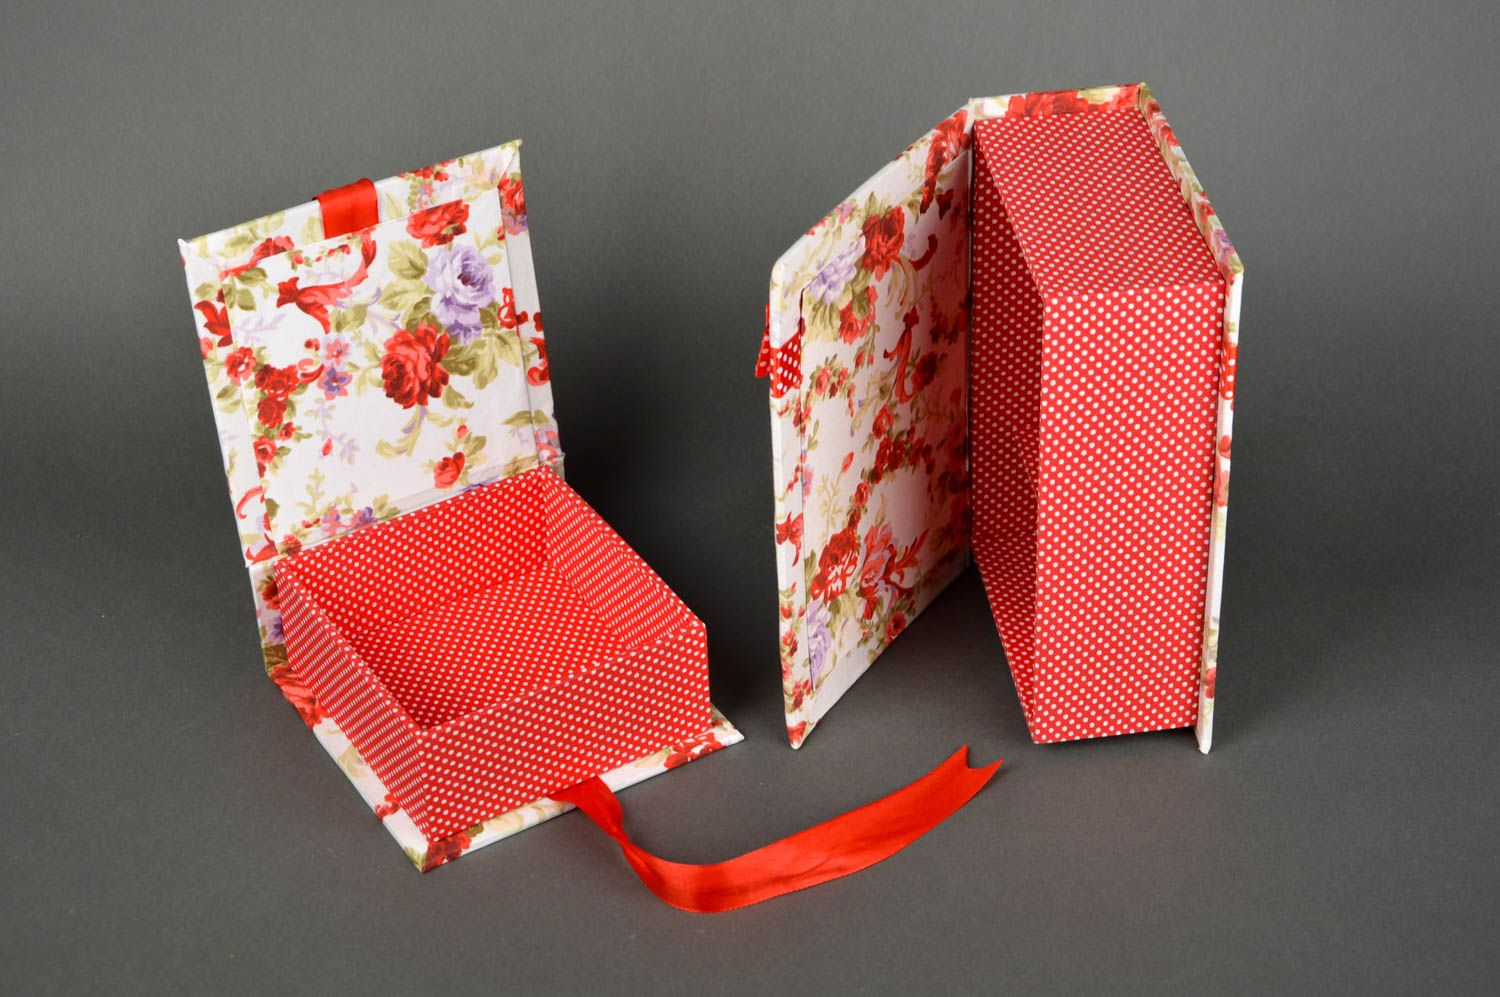 boxes Handmade box jewelry wooden box home decor box for small things gift  for girl. MADEHEART   Handmade box jewelry wooden box home decor box for